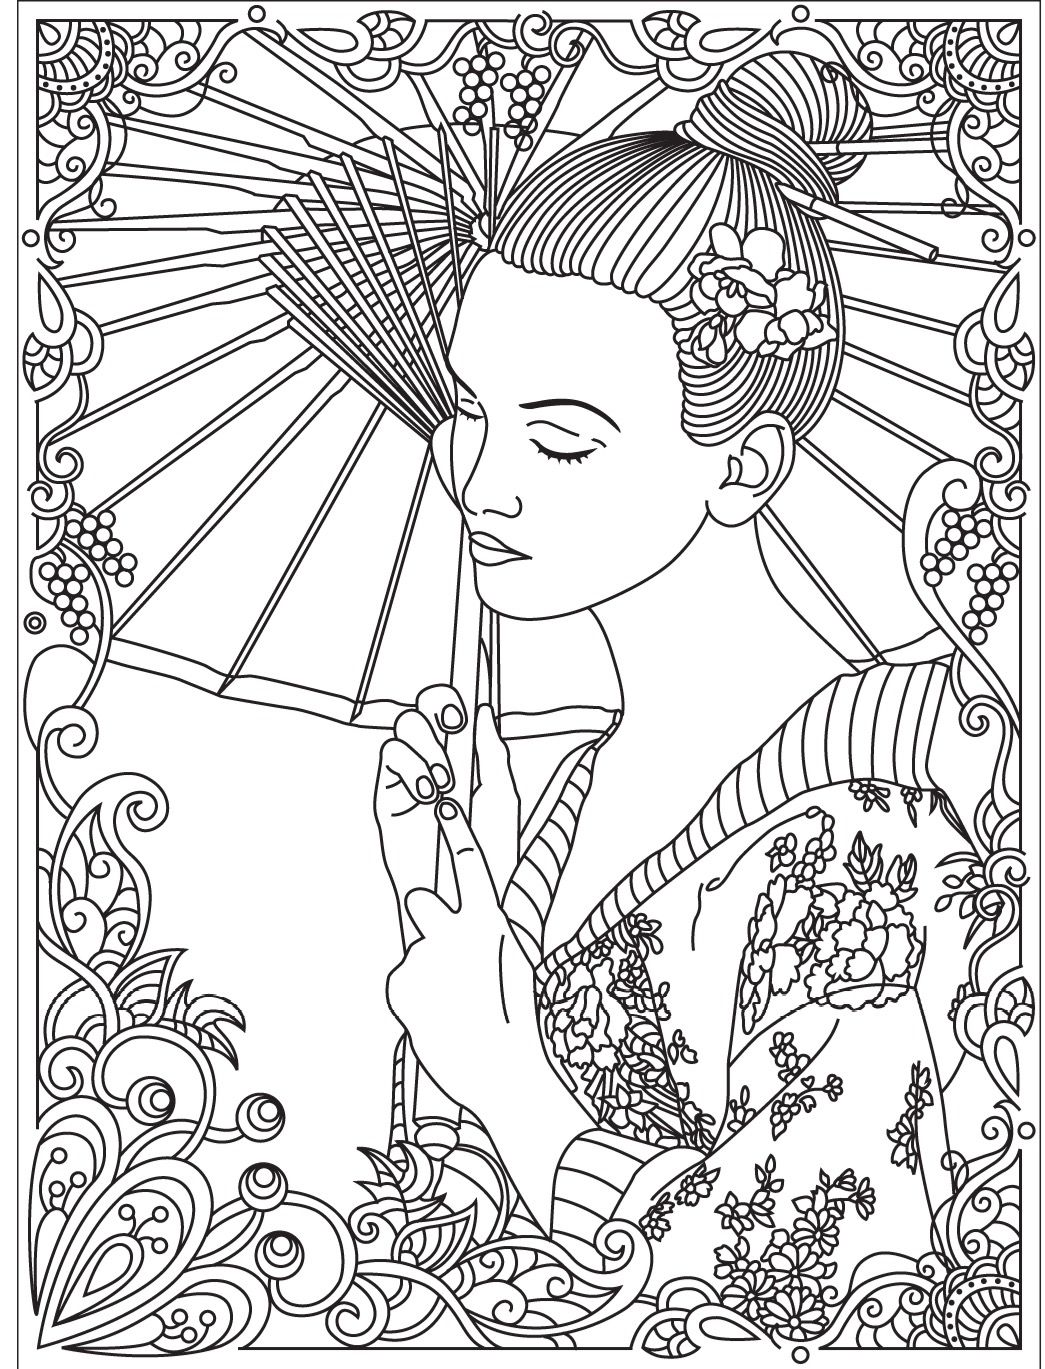 japan geisha colorish coloring book for adults mandala relax by